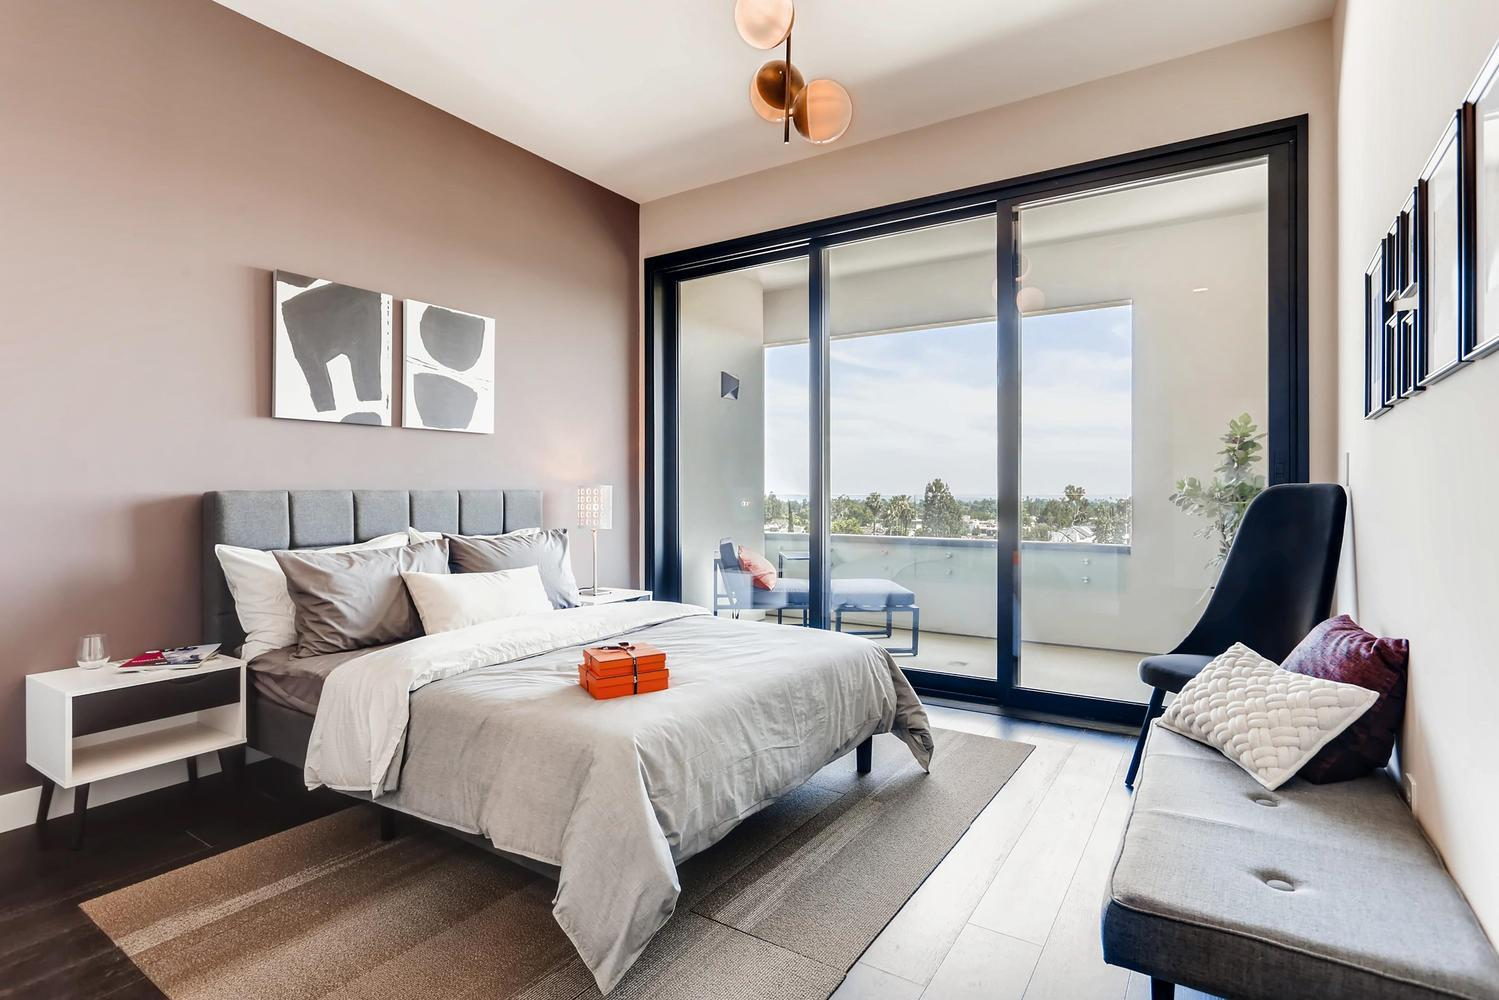 Bedroom featured in the Plan E By Adept Urban  in Los Angeles, CA